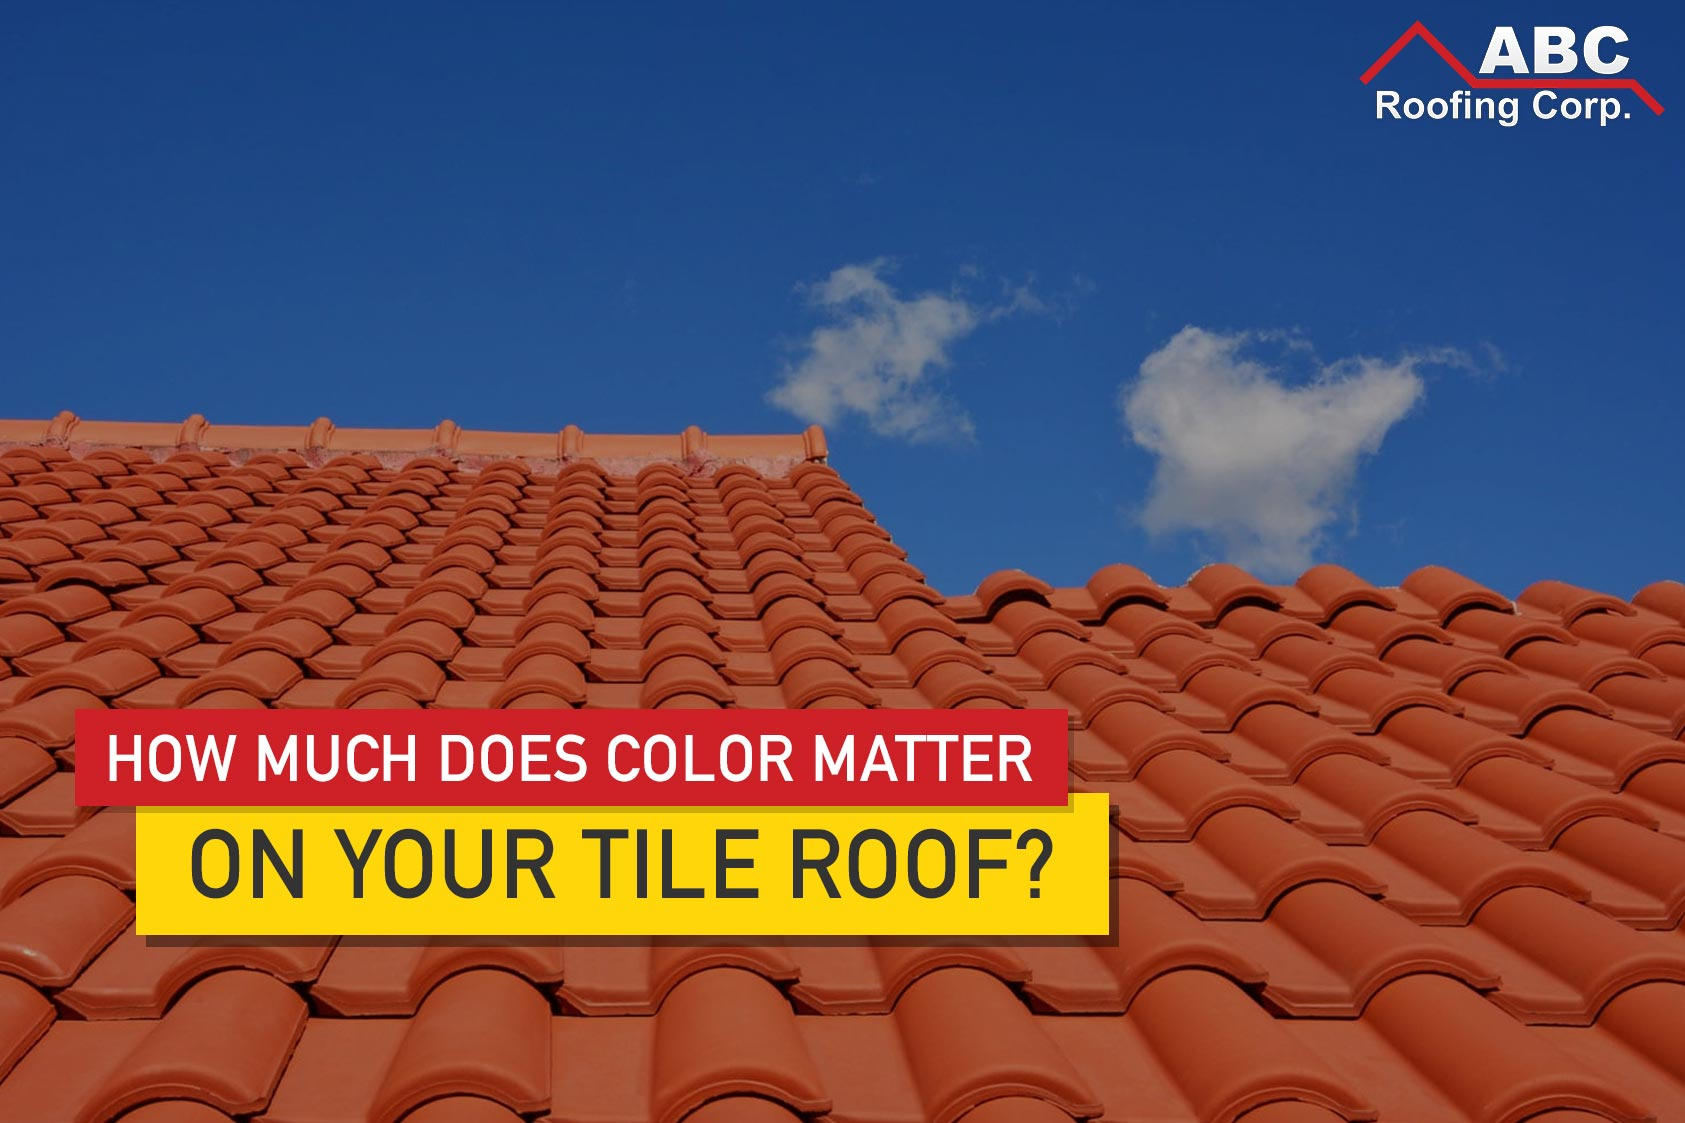 choosing the color of your tile roof to